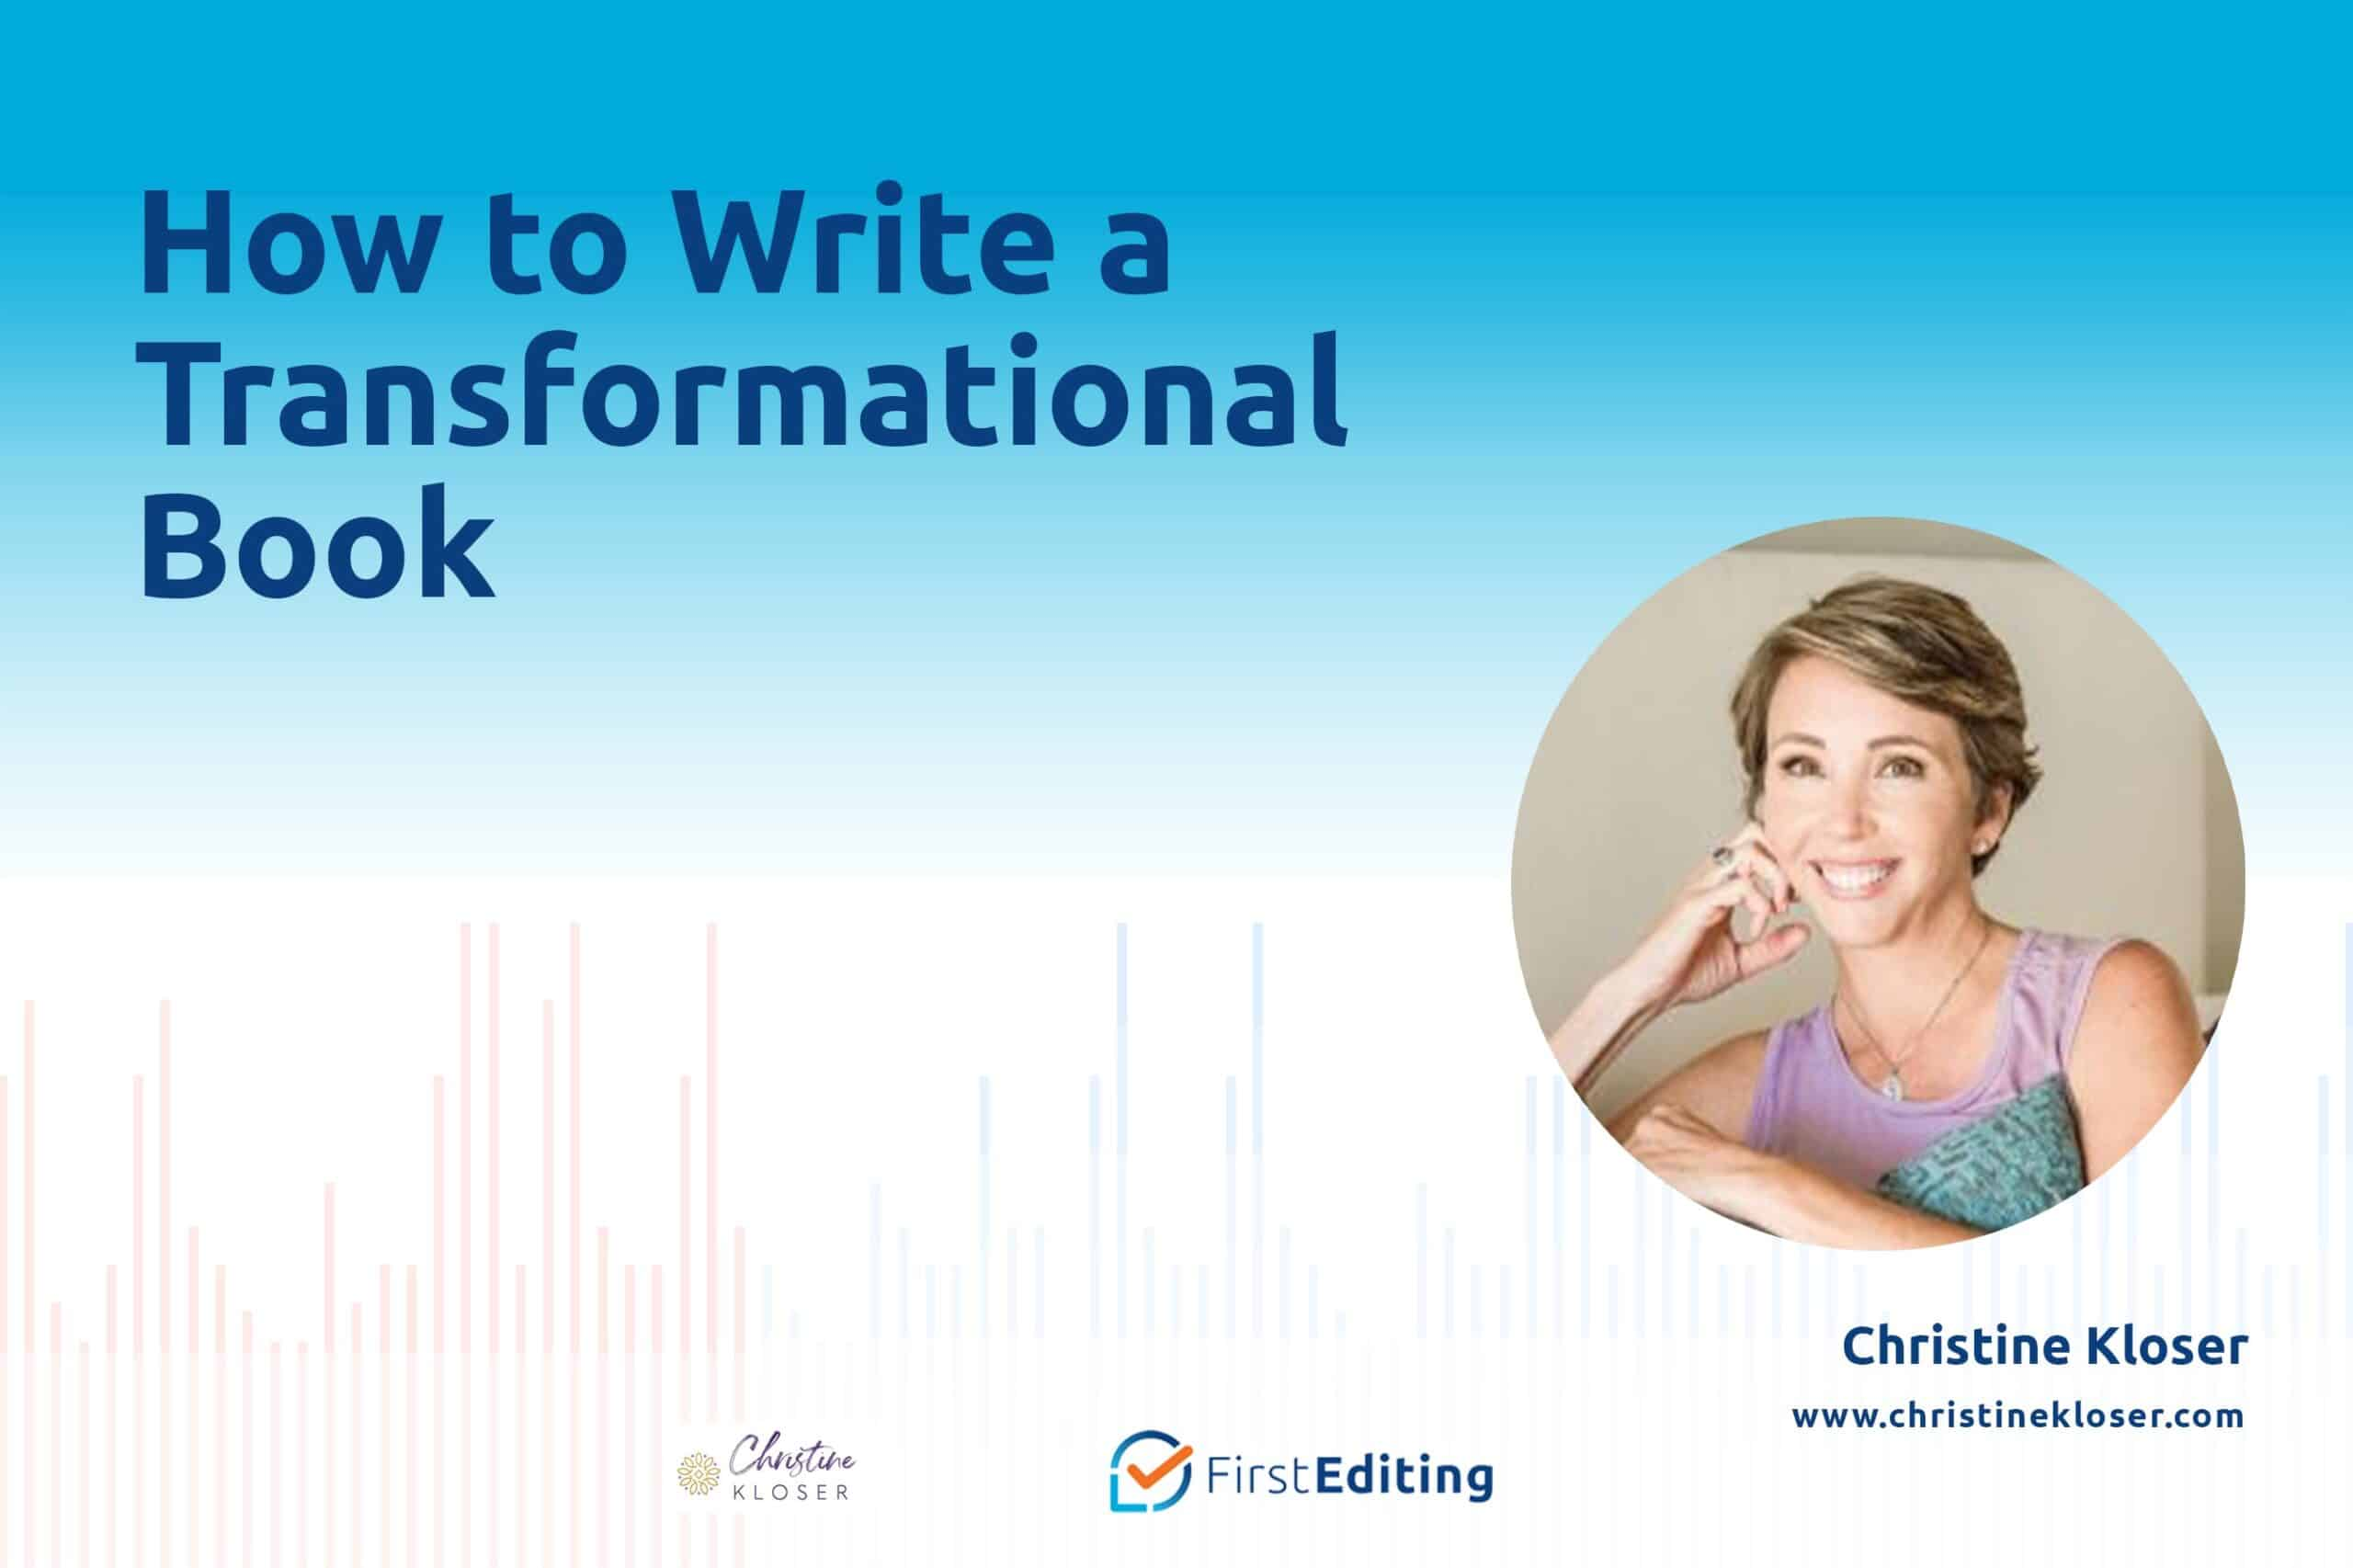 How to Write a Transformational Book with Christine Kloser